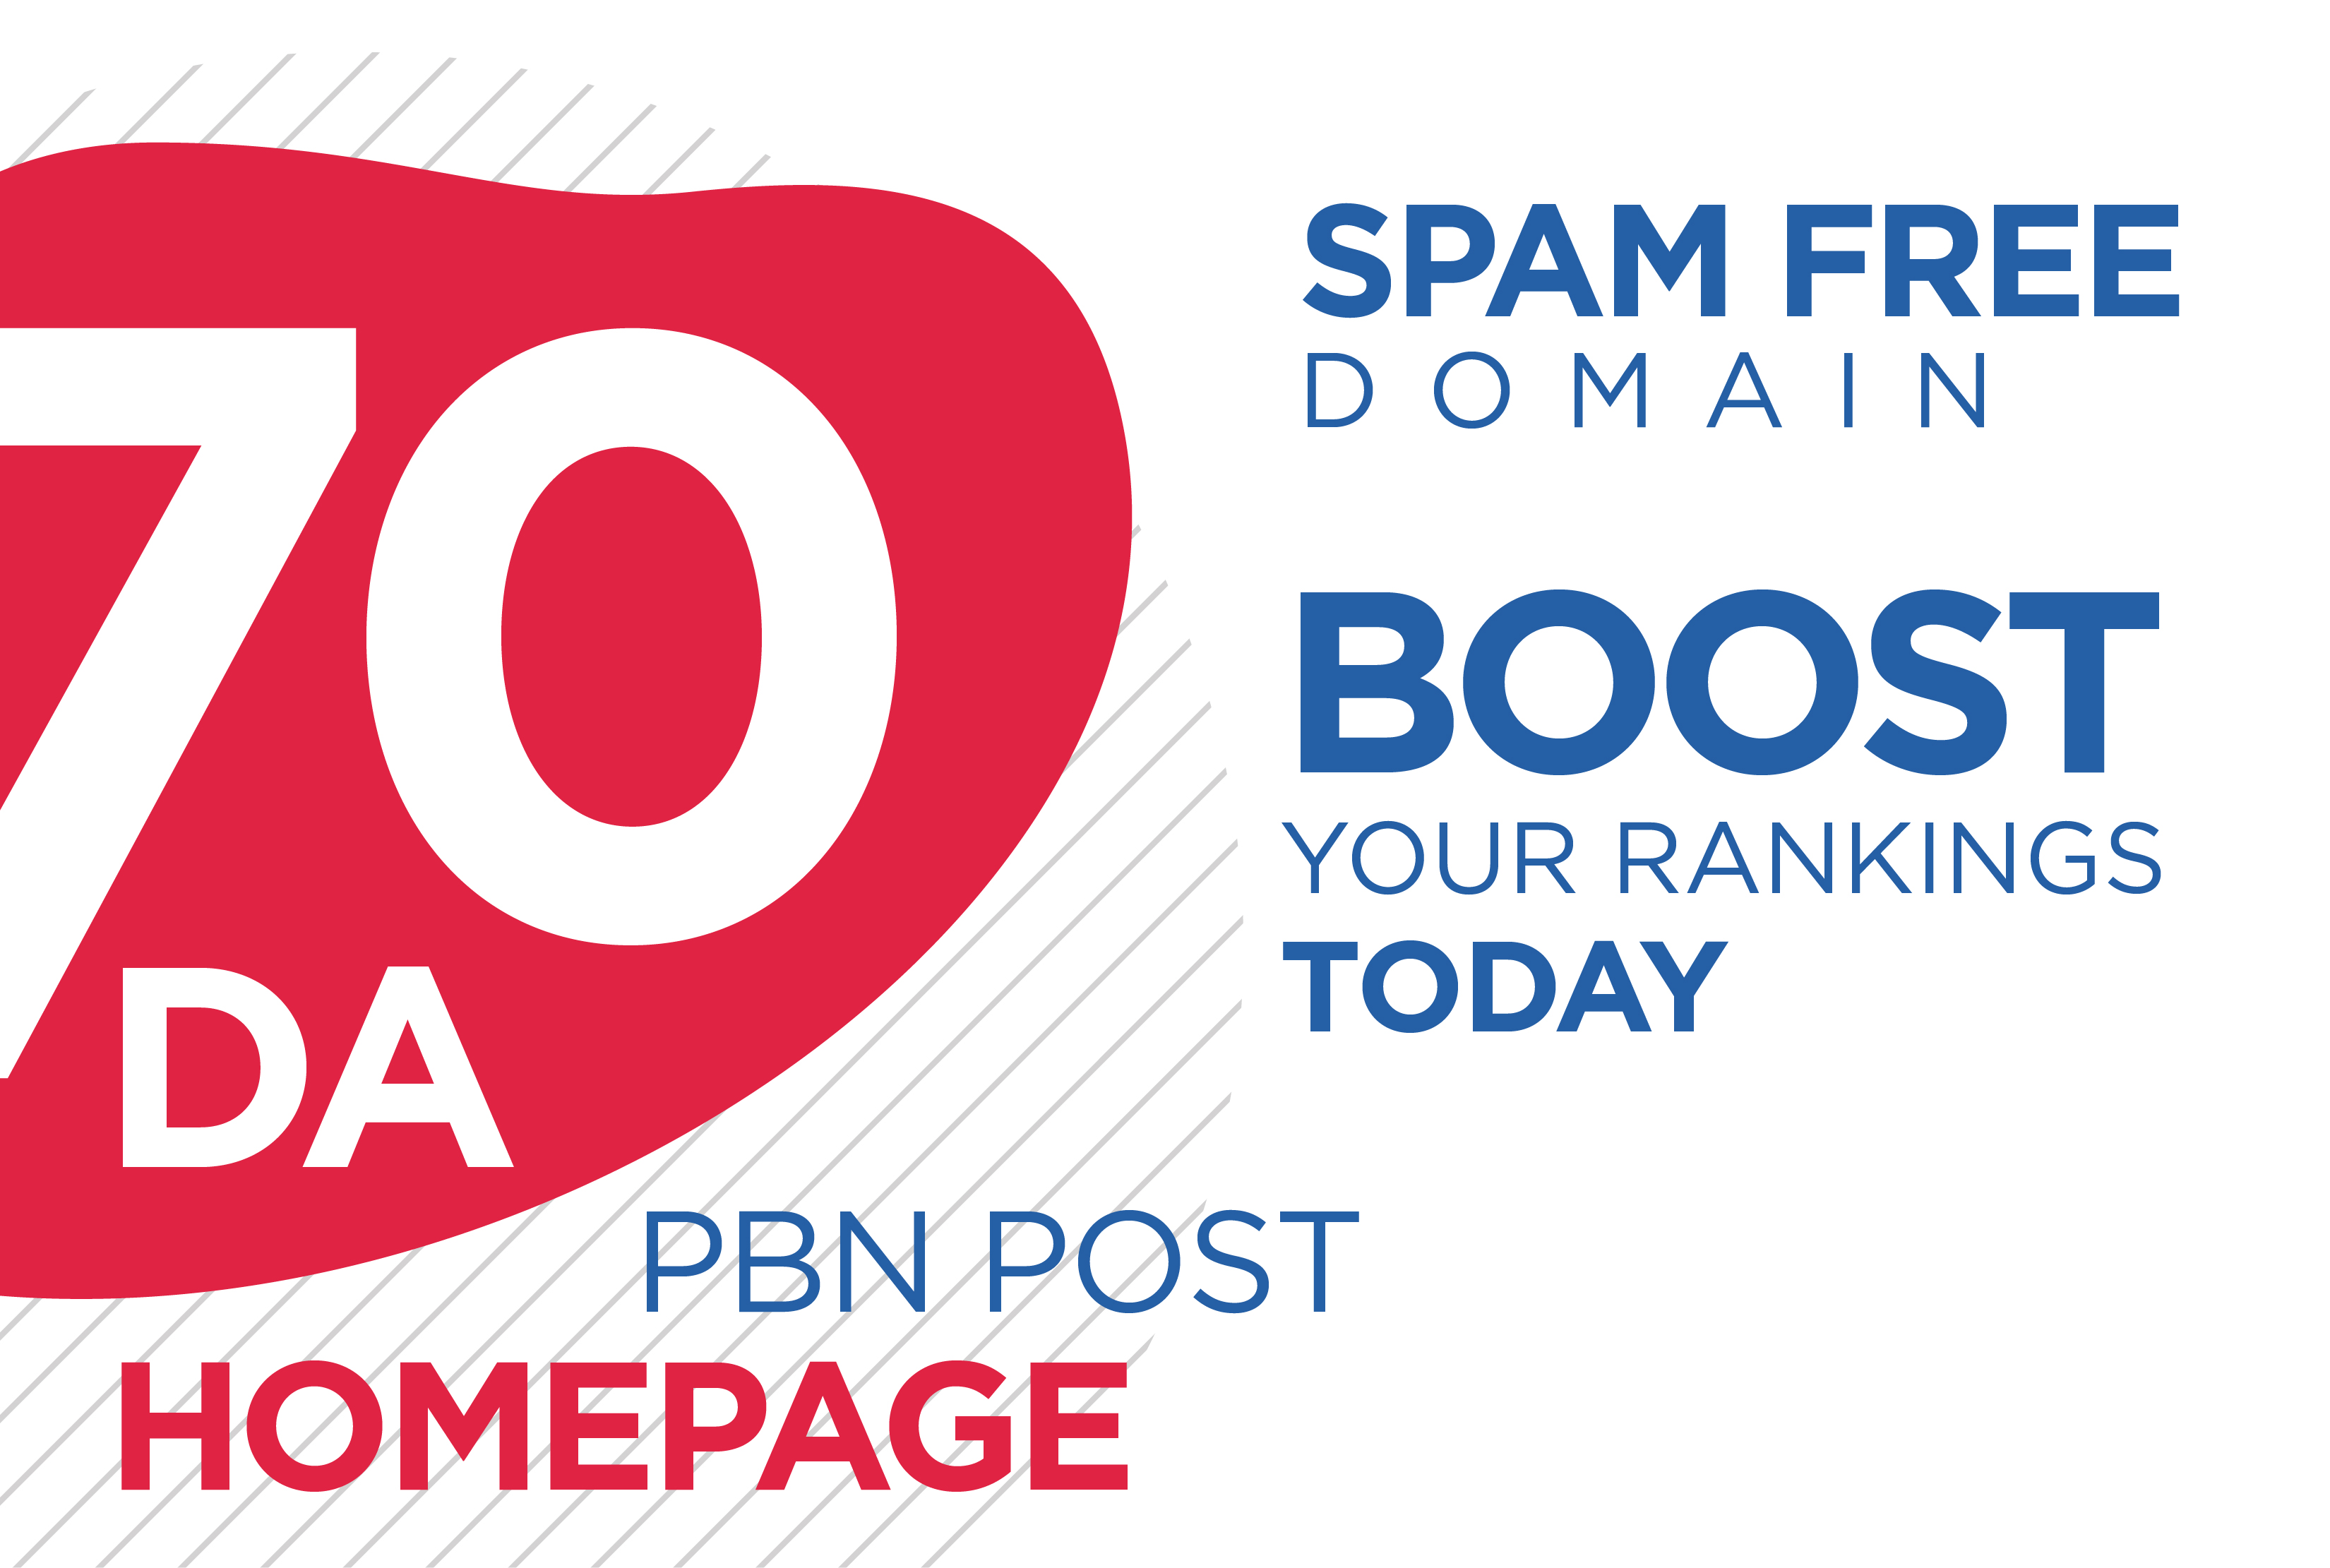 Get REAL 70DA PBN HOME POST And Boost Your Ranking